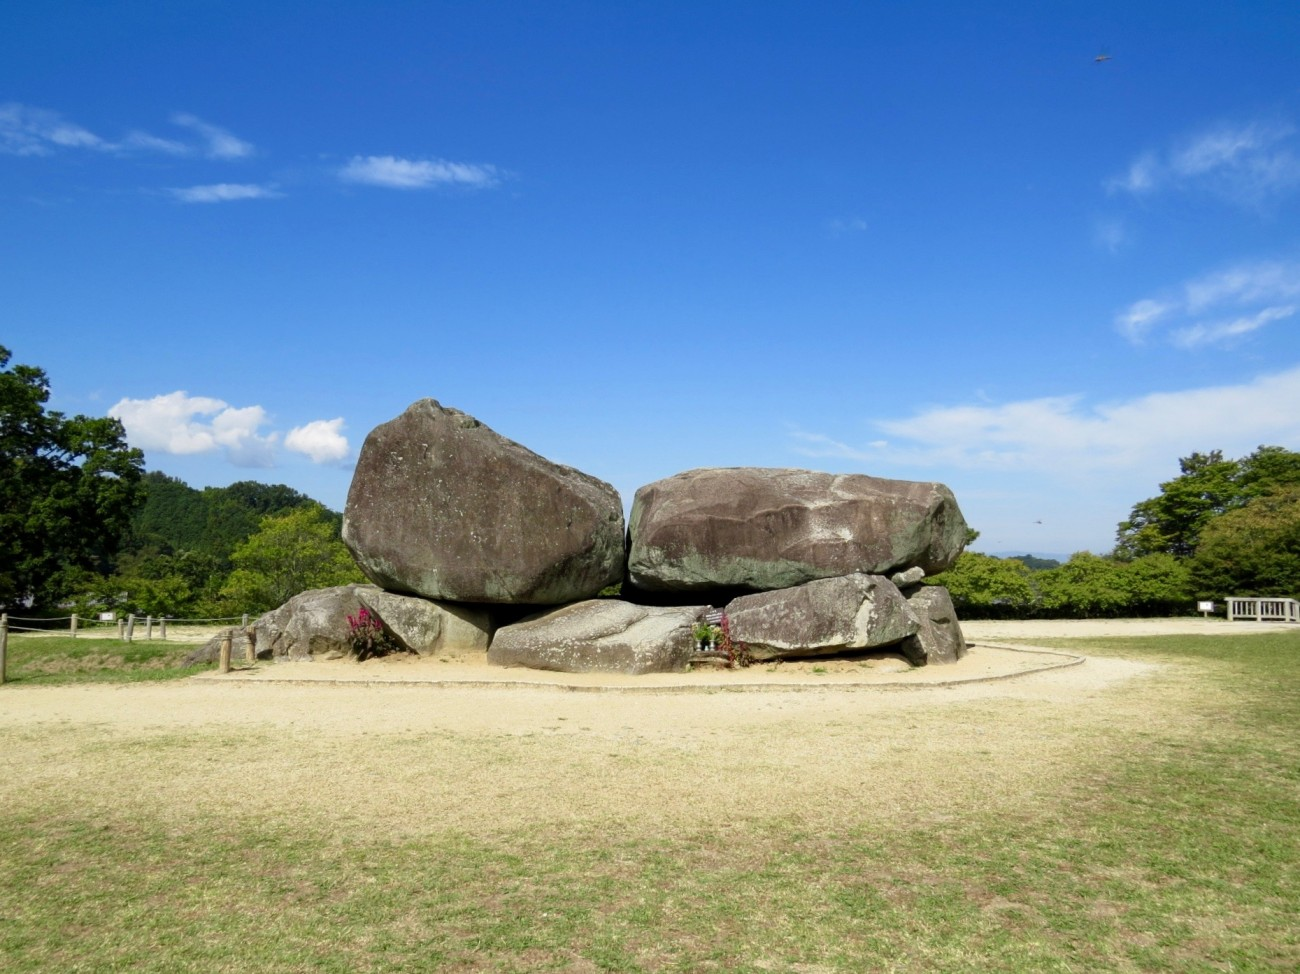 10 Top Places To Visit In Nara - Travel Guide To Japan's